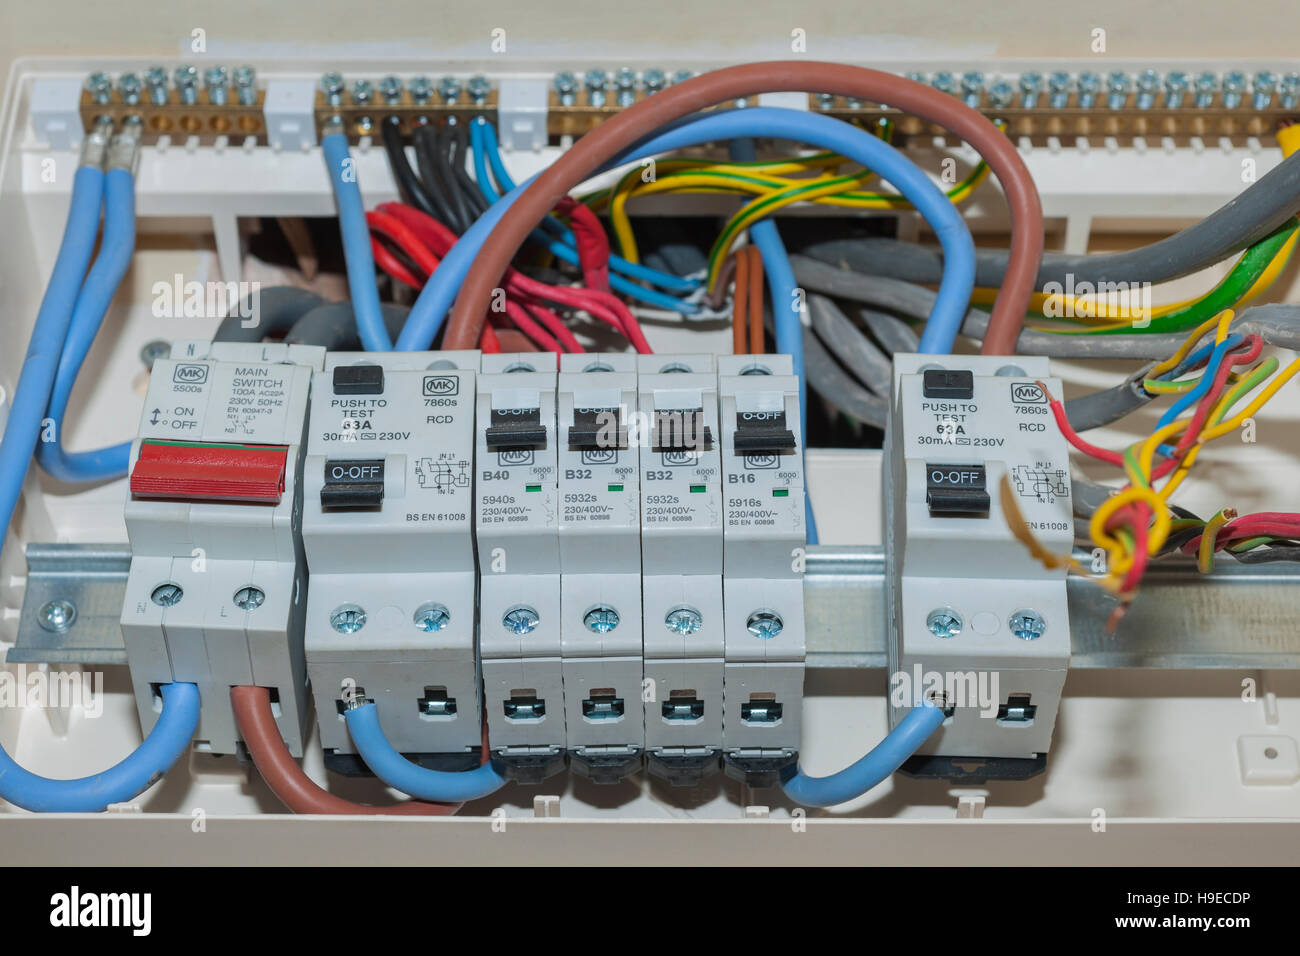 a rcd fuse box in the uk H9ECDP a rcd fuse box in the uk stock photo, royalty free image rcd fuse box at aneh.co